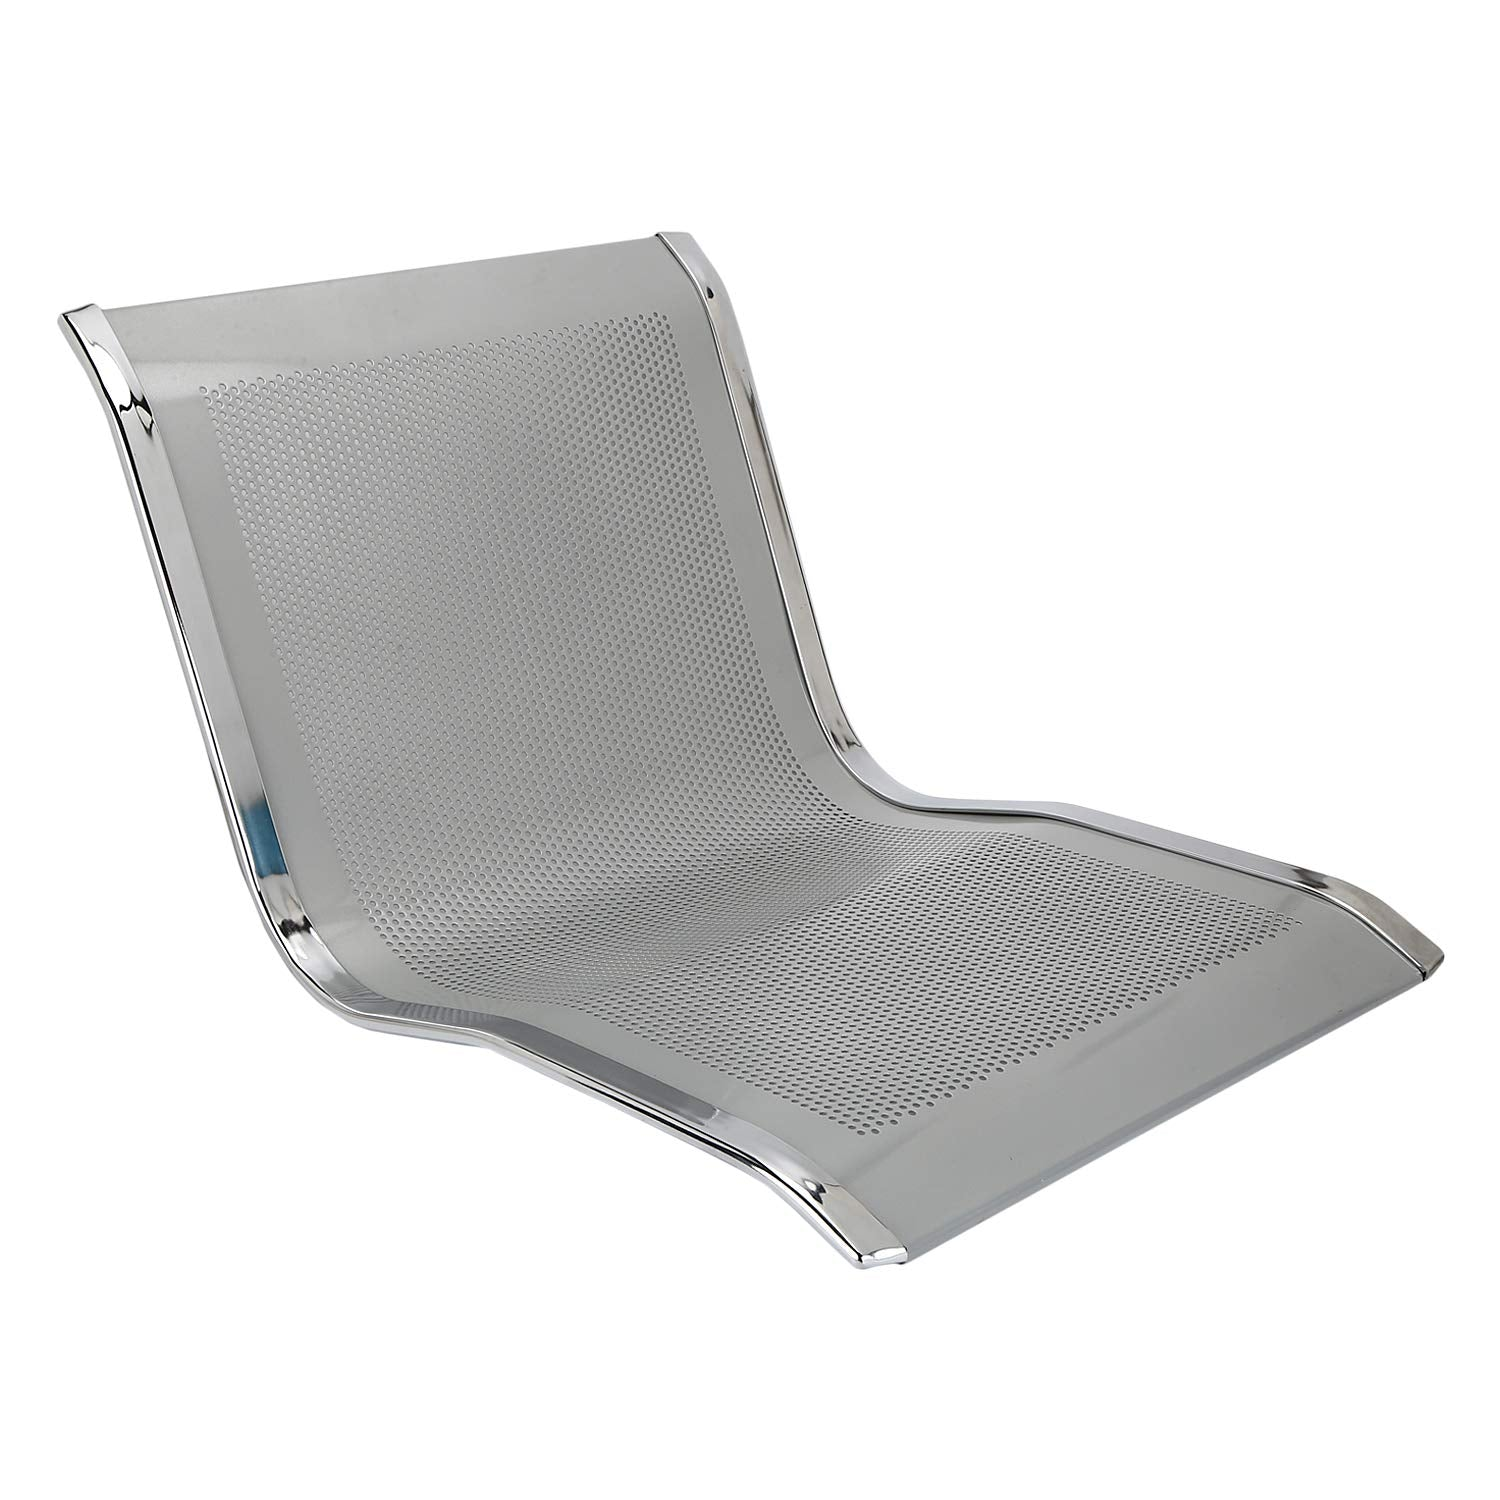 Three Seater Aluminium Alloy Airport Waiting and Reception Chair - Silver